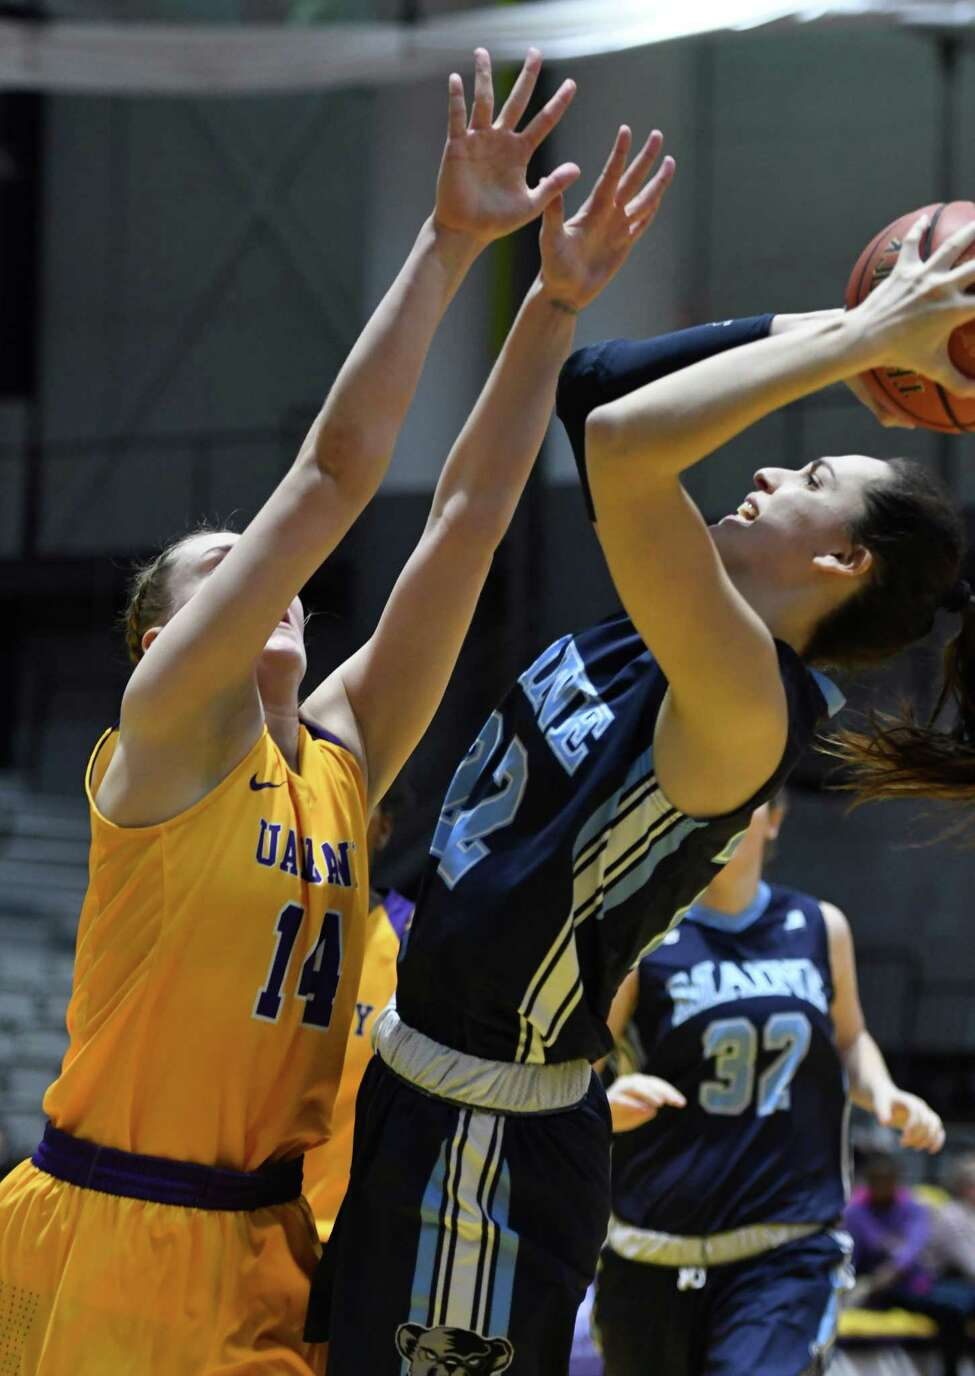 UAlbany's Amanda Kantzy guards Maine's Blanca Millan as she attempts a basket during a game at SEFCU Center on Saturday, Feb. 16, 2019 in Albany, N.Y. (Jenn March, Special to the Times Union)